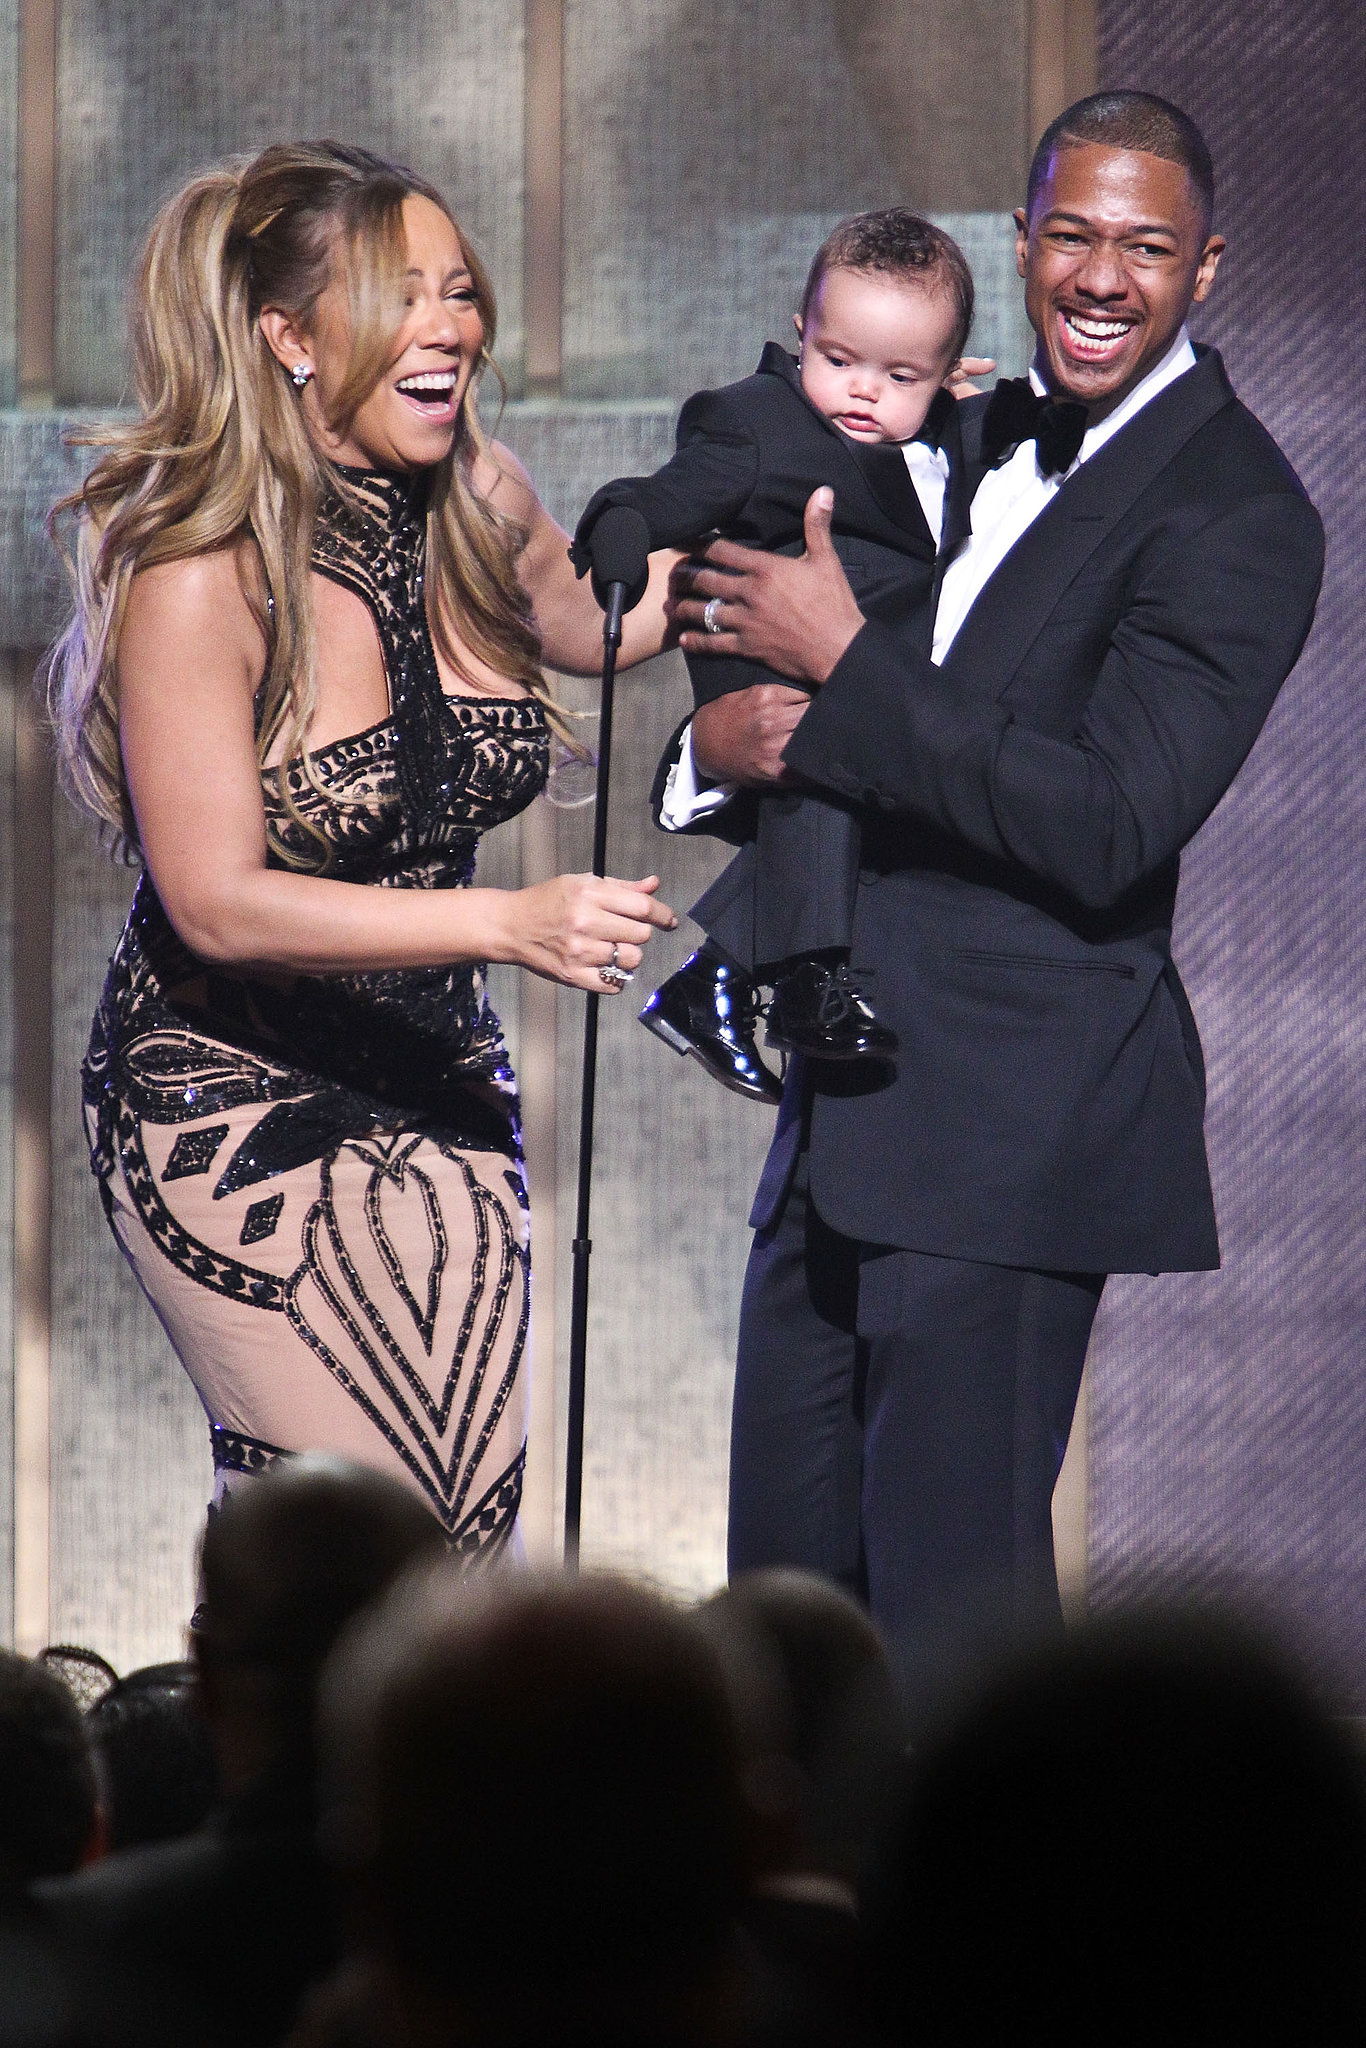 Mariah Carey and Nick Cannon brougt their son, Moroccan Cannon, on stage at the BET Honors show in Washington DC in January 2012.